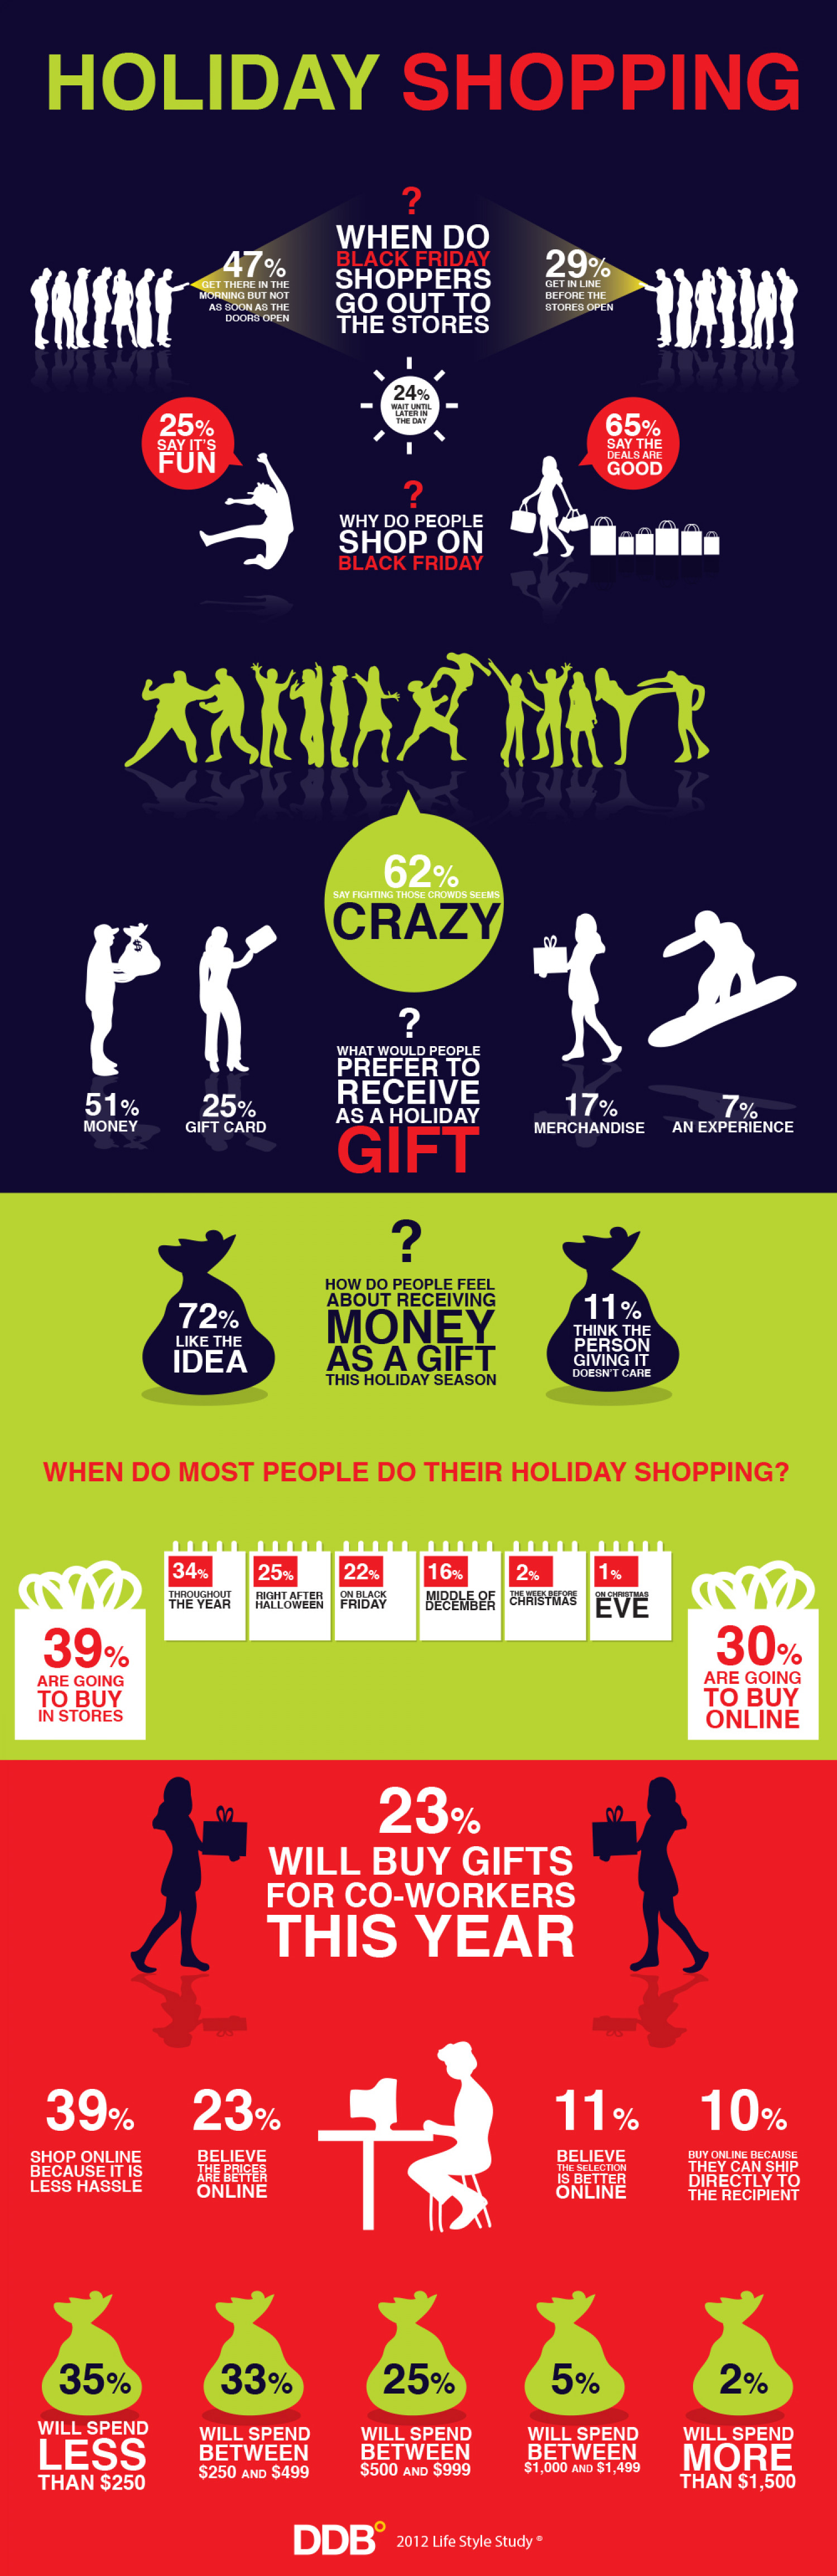 Holiday Shopping Infographic